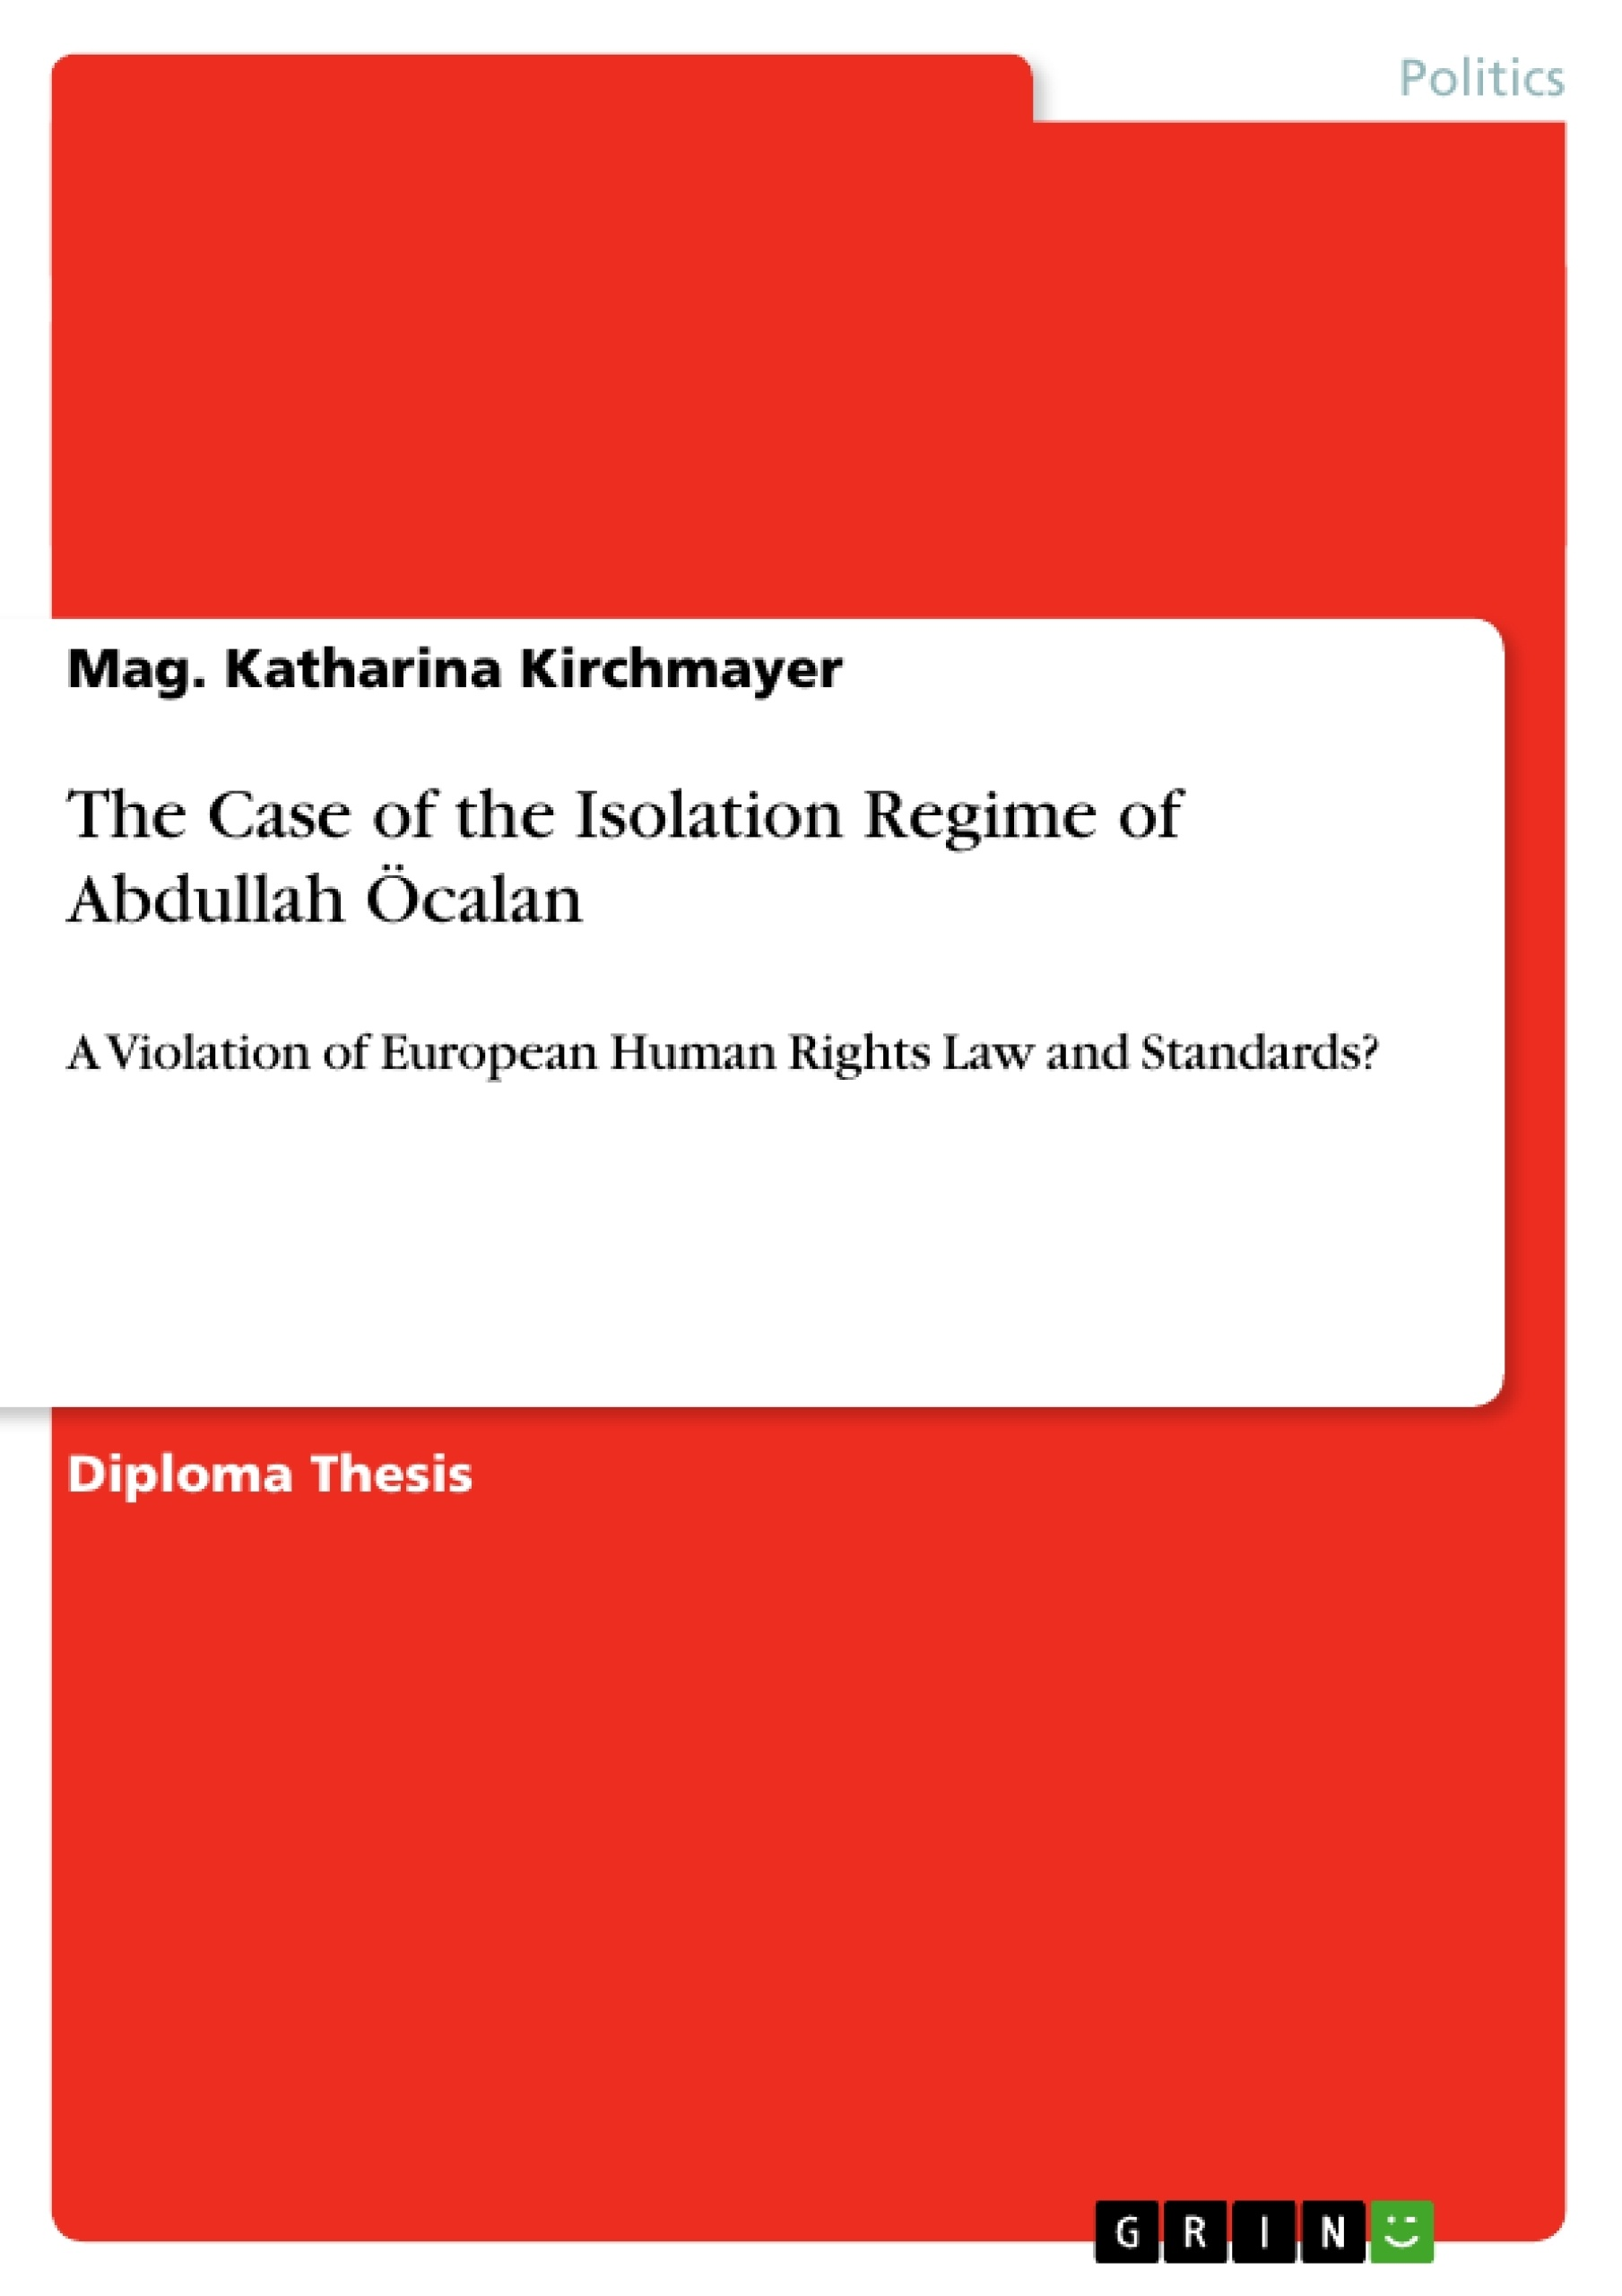 Title: The Case of the Isolation Regime of Abdullah Öcalan